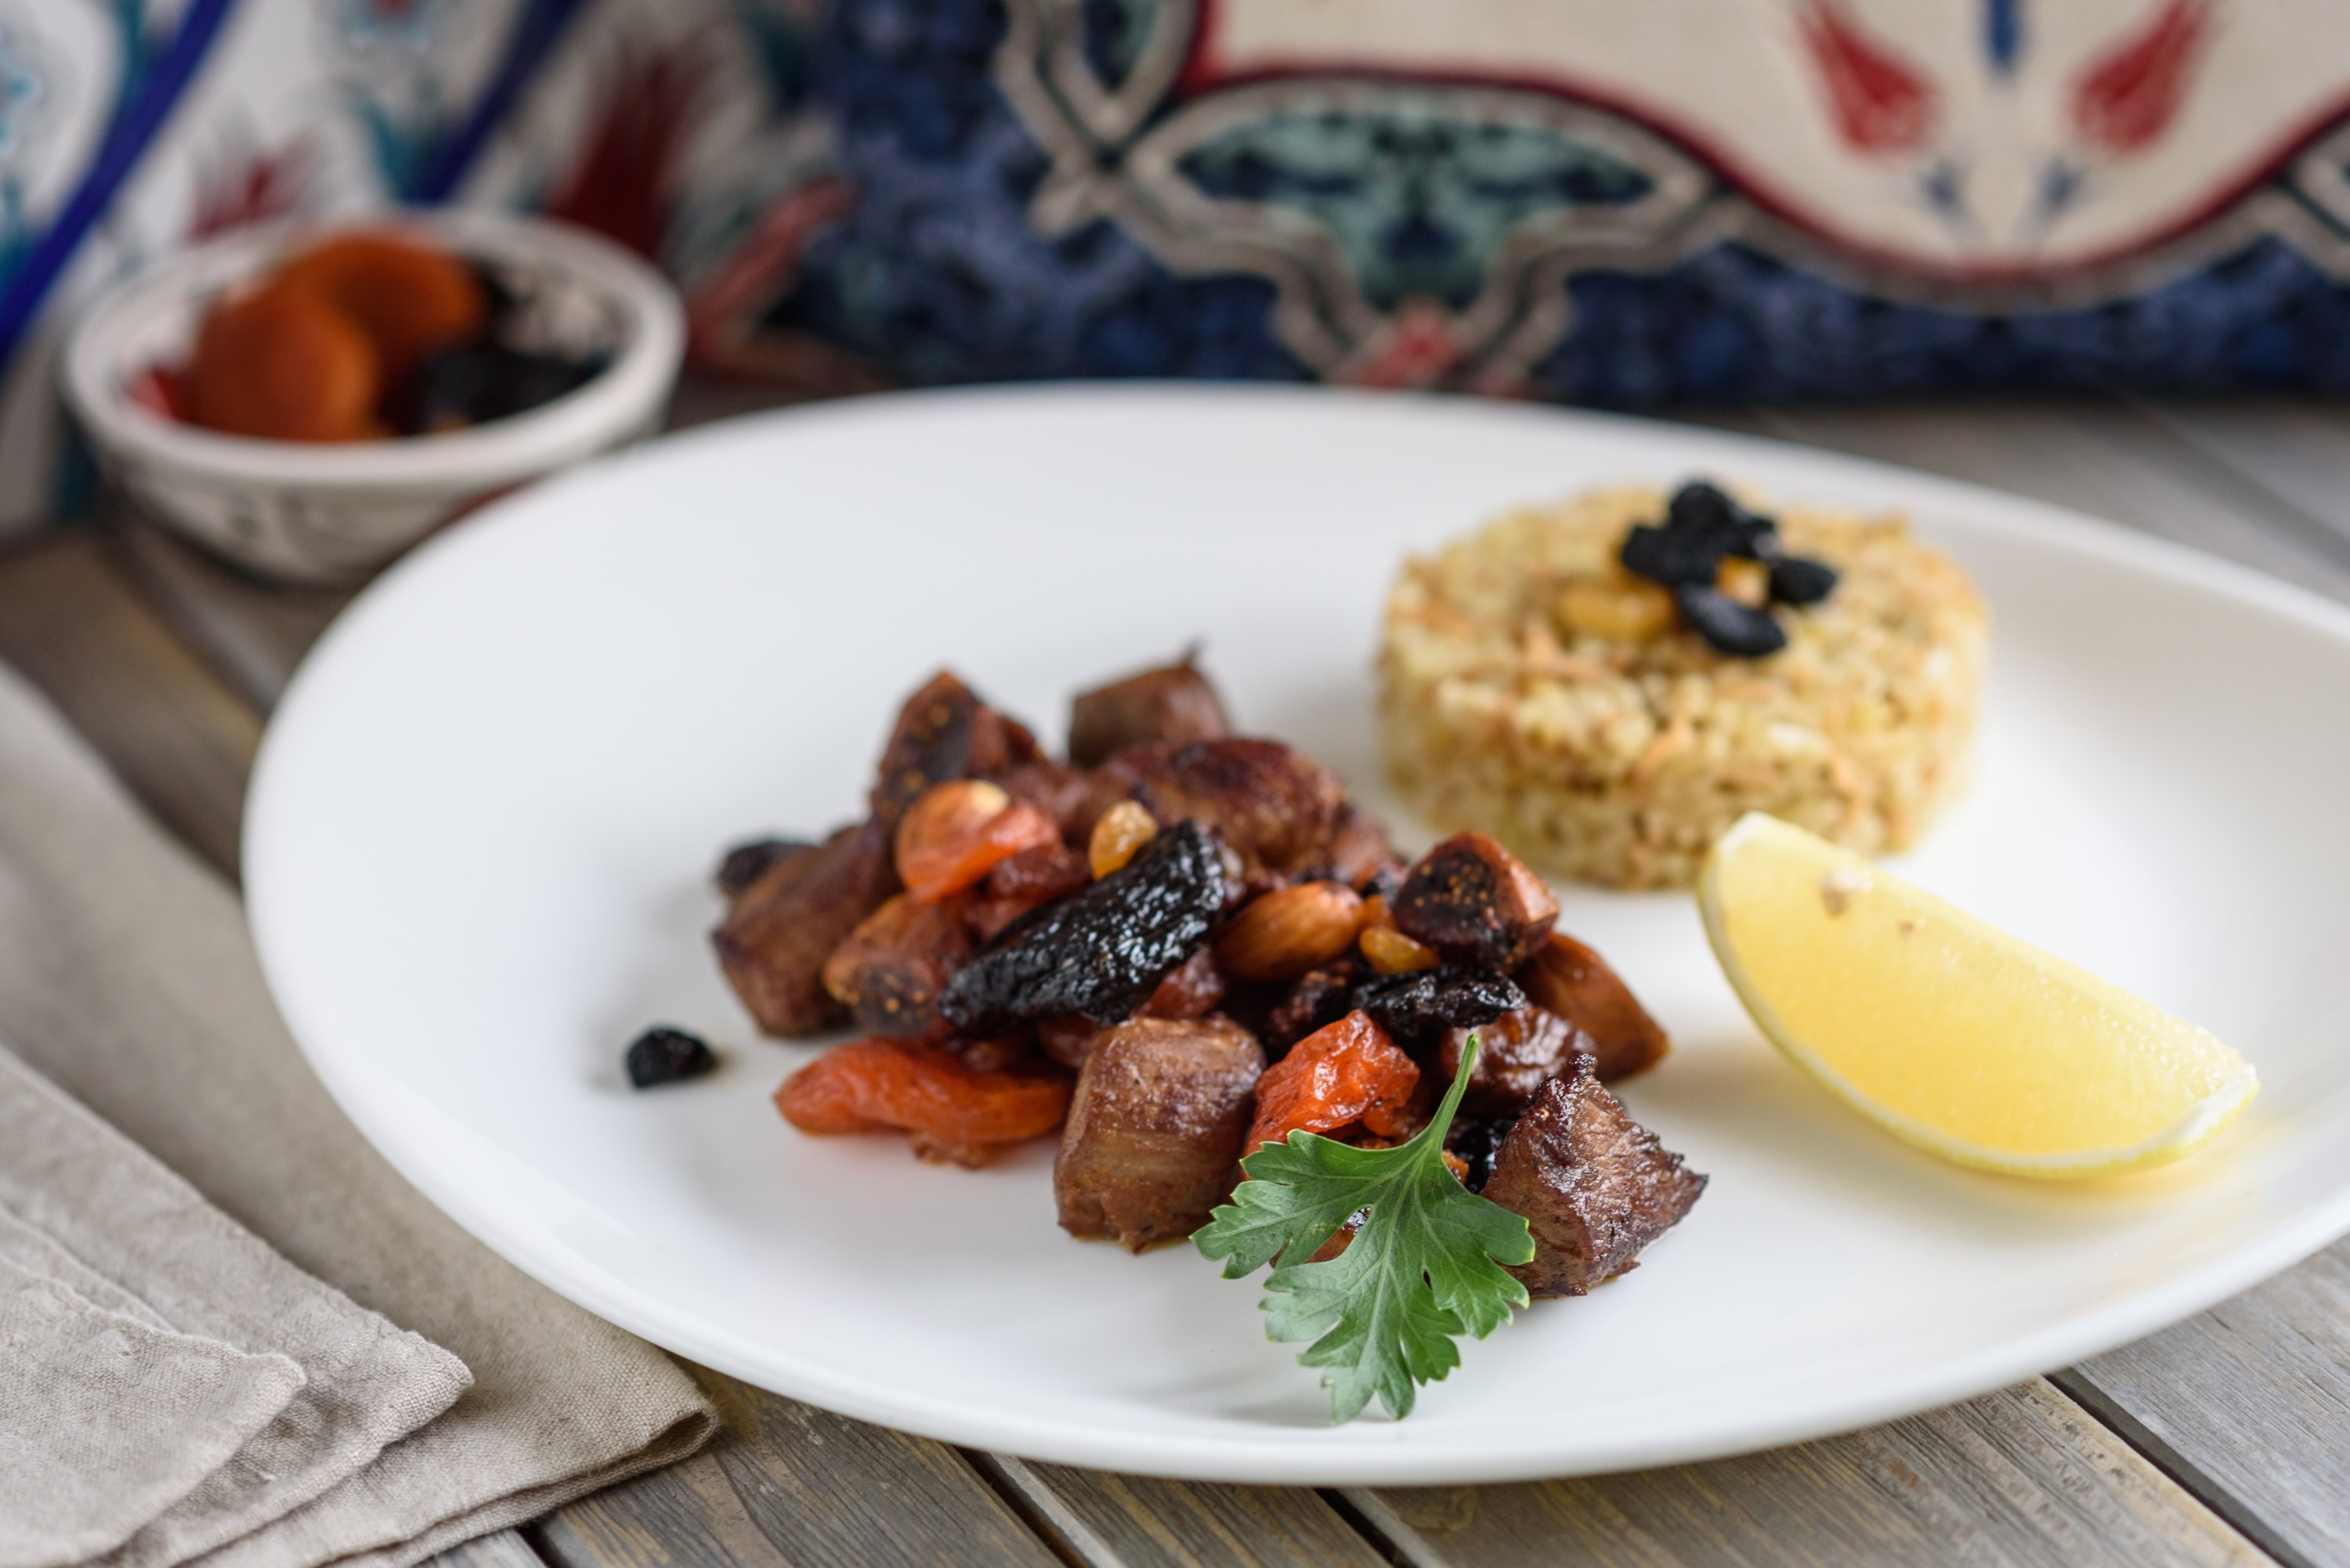 Mutancana is a traditional Turkish lamb stew with dried figs, apricots, almonds and raisins. (Shutterstock Photo)